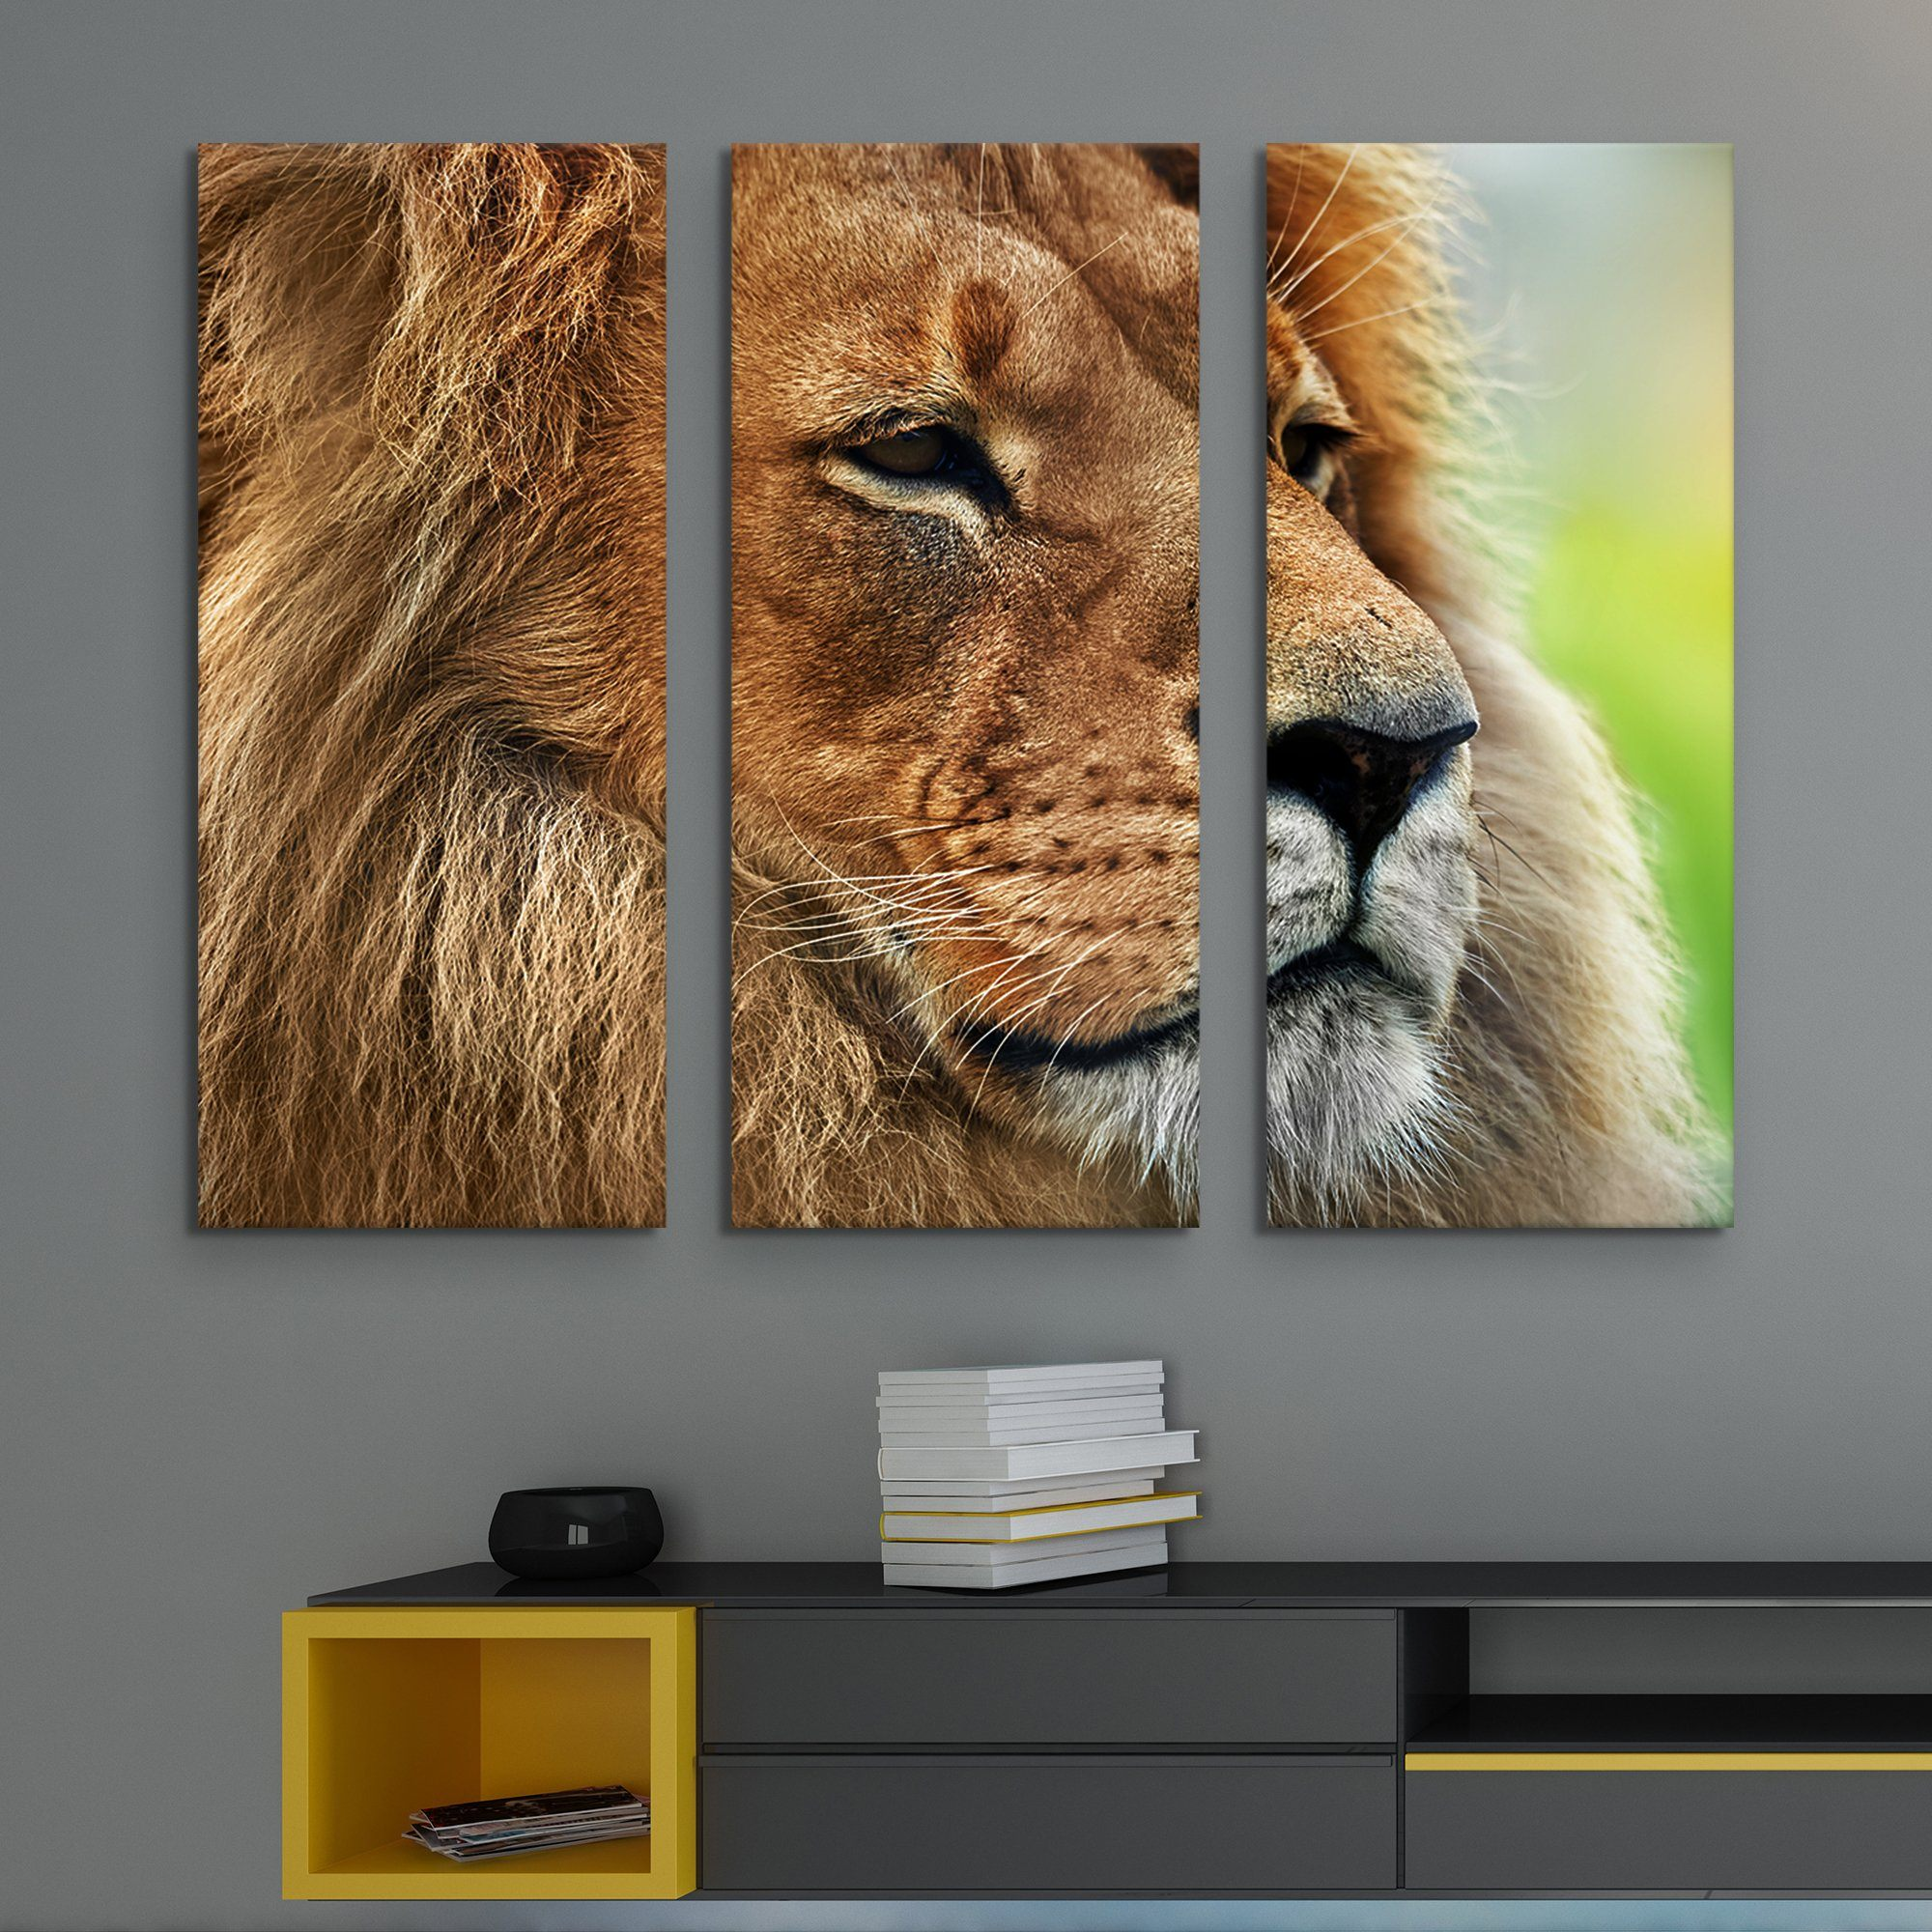 3 piece Like a True King wall art